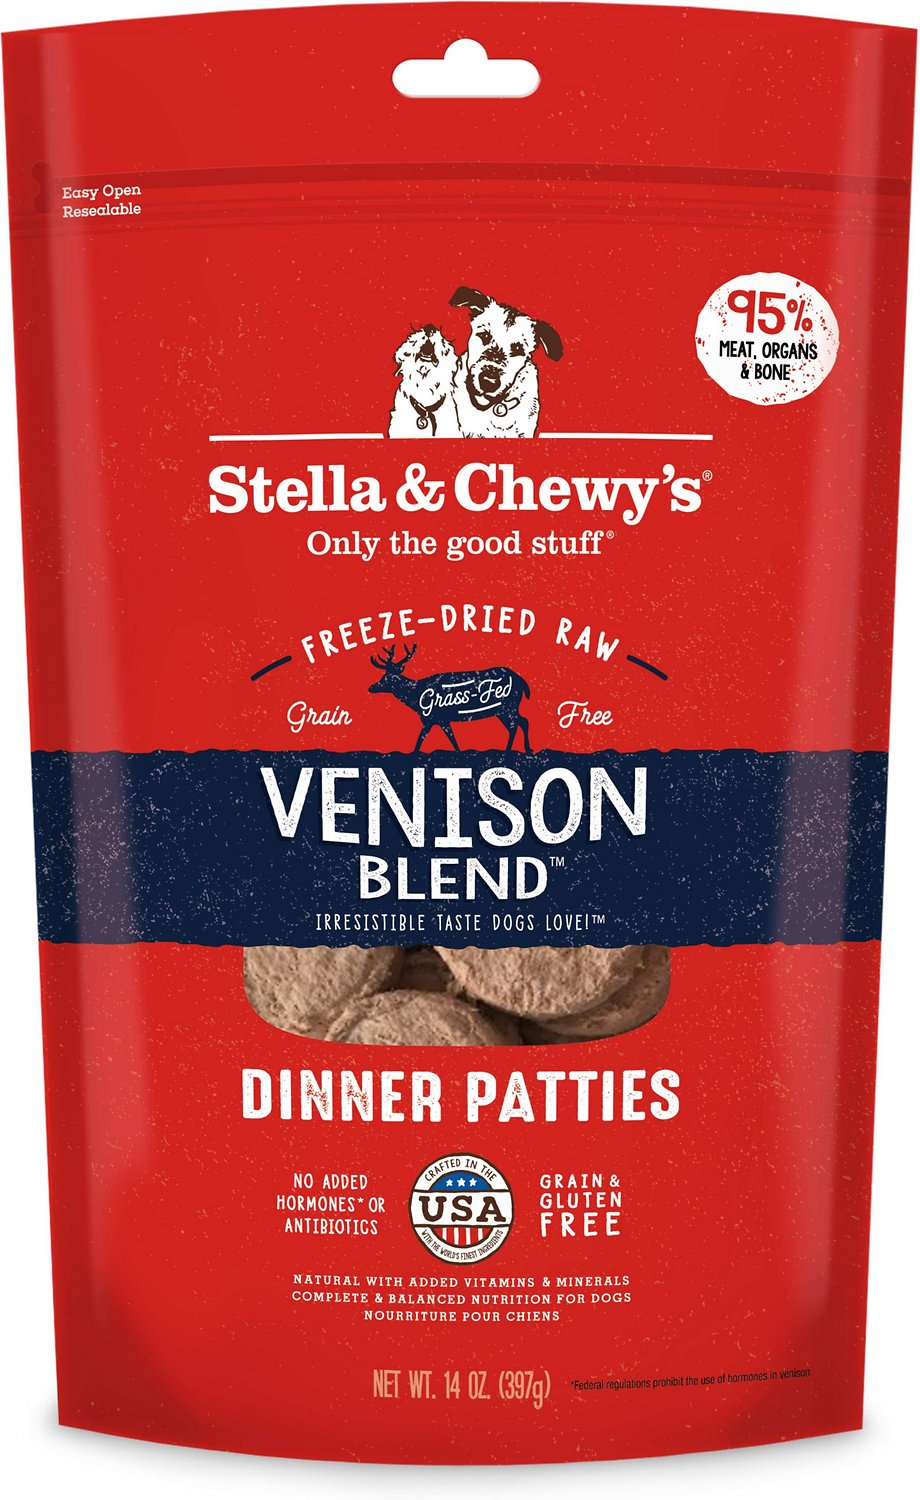 Stella & Chewy's Venison Blend Dinner Patties Grain-Free Freeze-Dried Dog Food Image